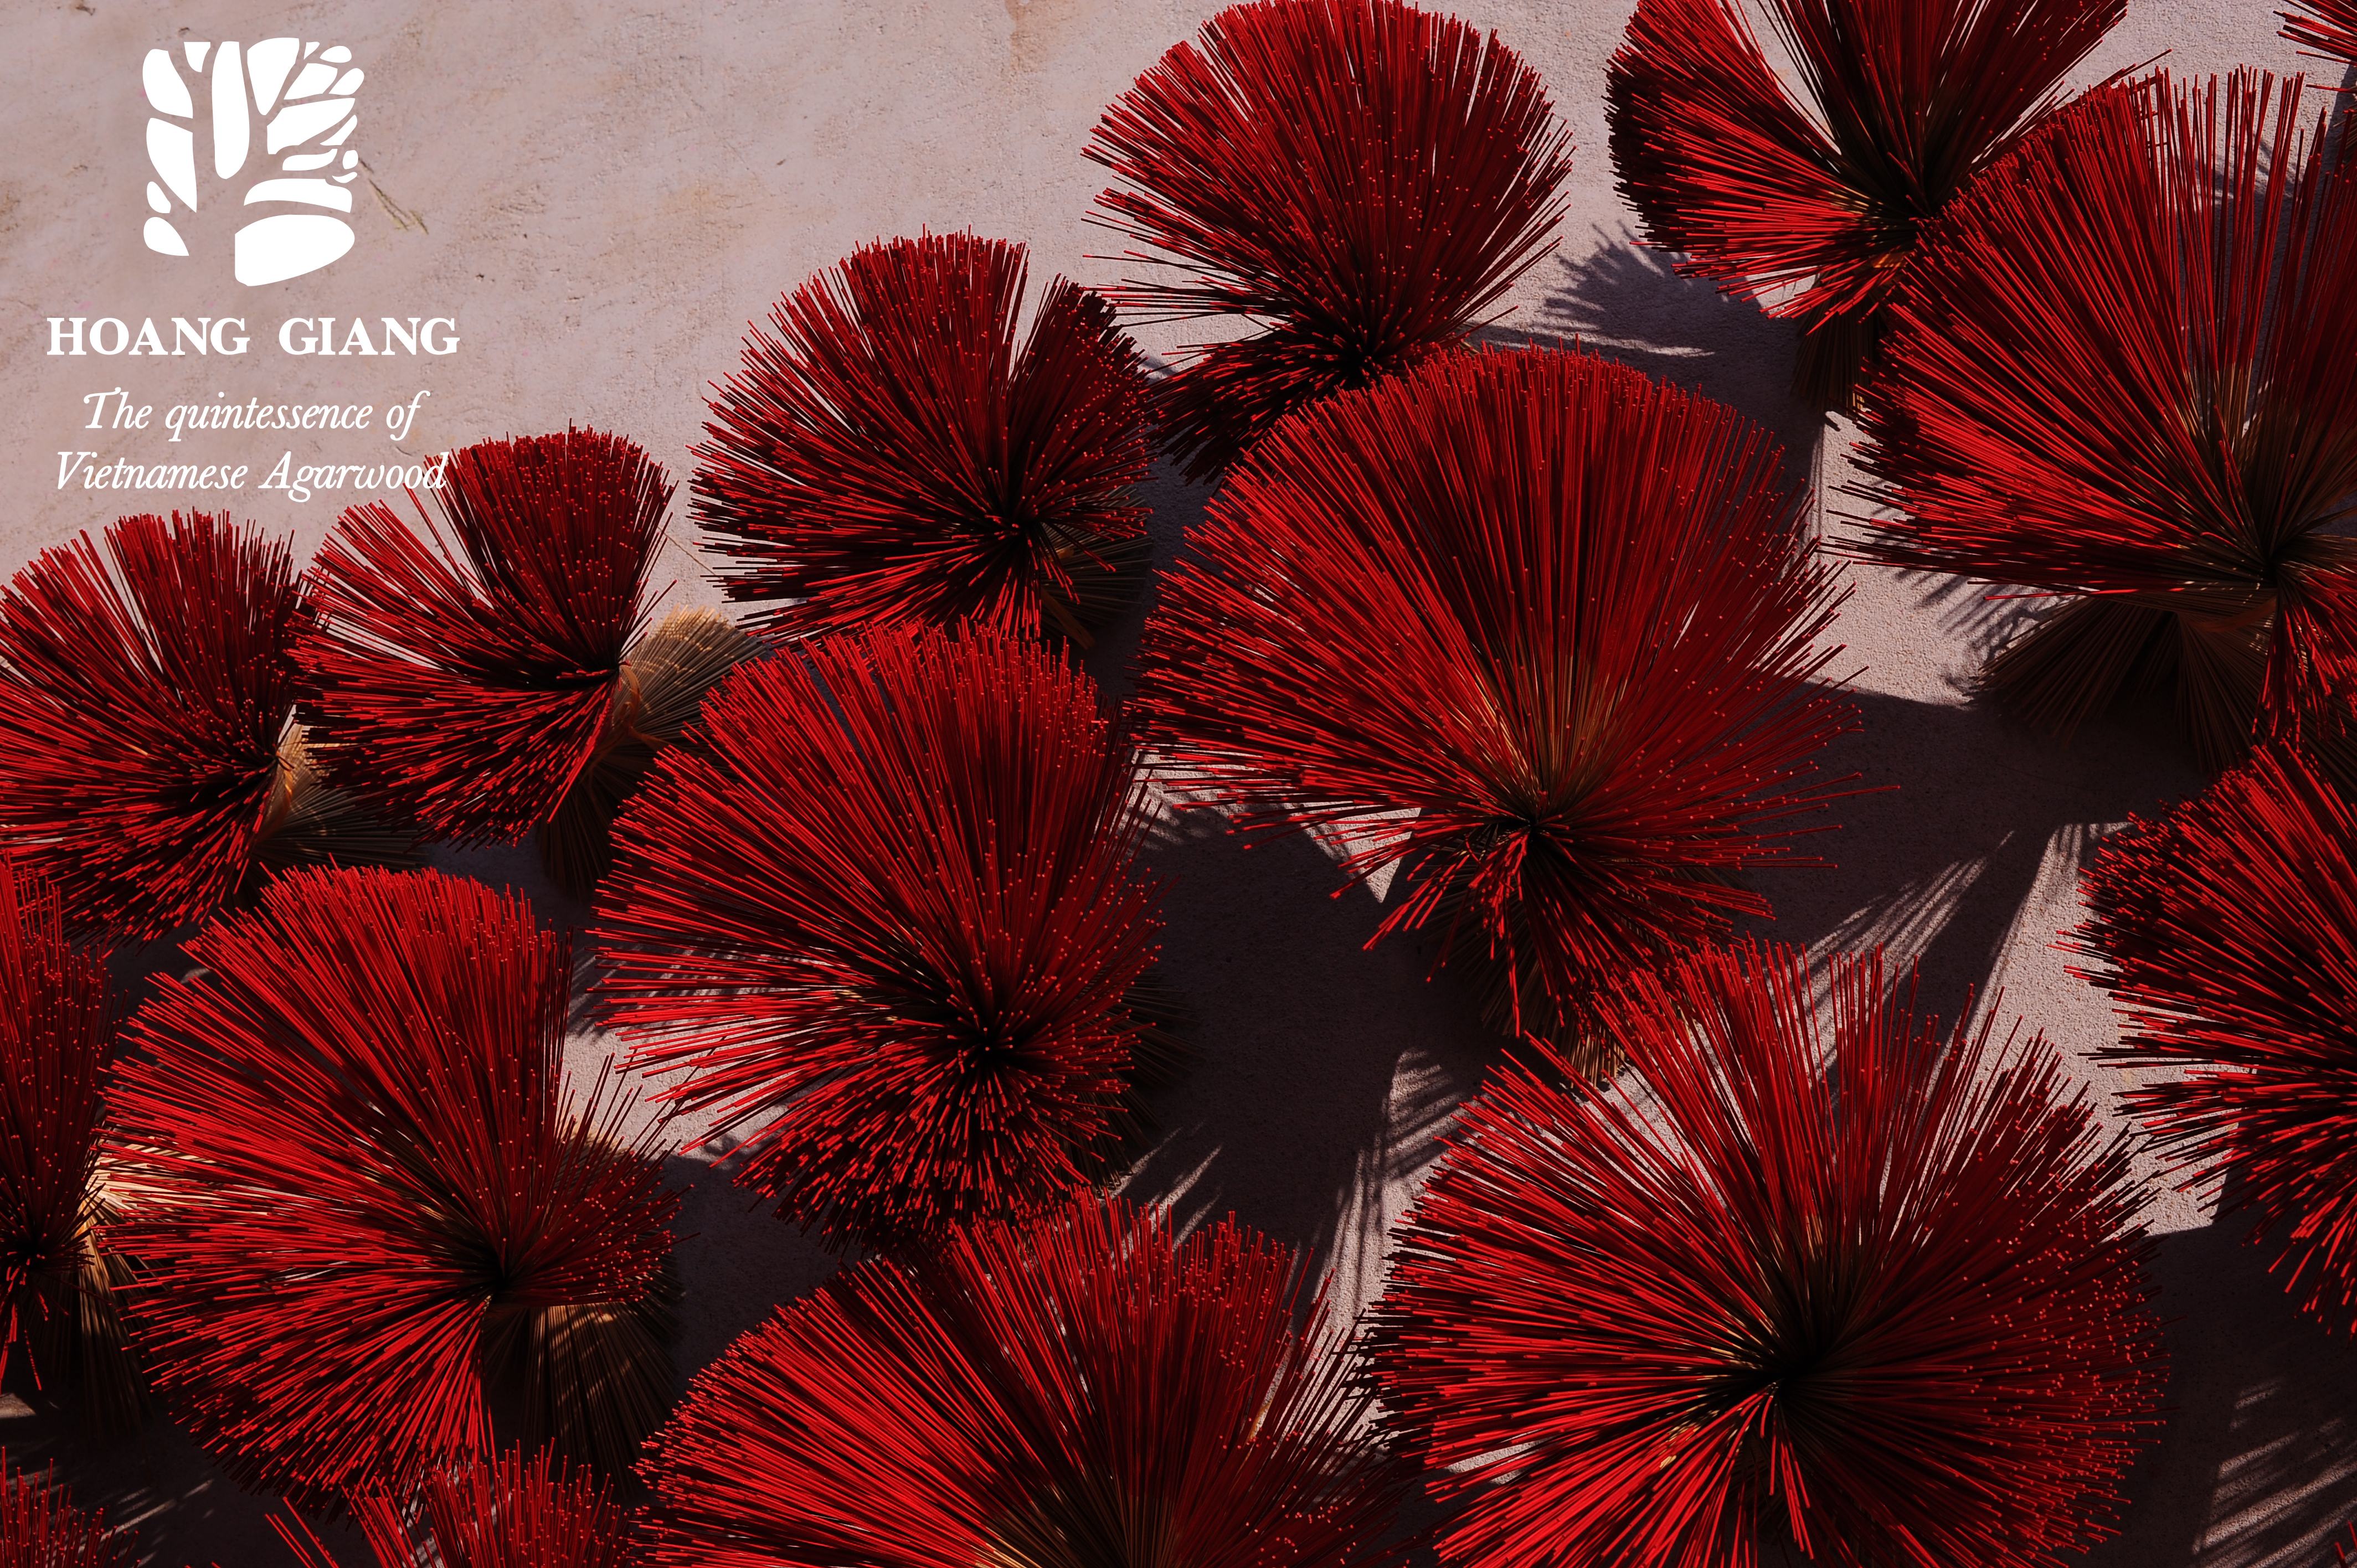 The Featured Bright Red Color Of The Stick Of Haga Natural Incense Stick Hoang Giang Agarwood Ltd